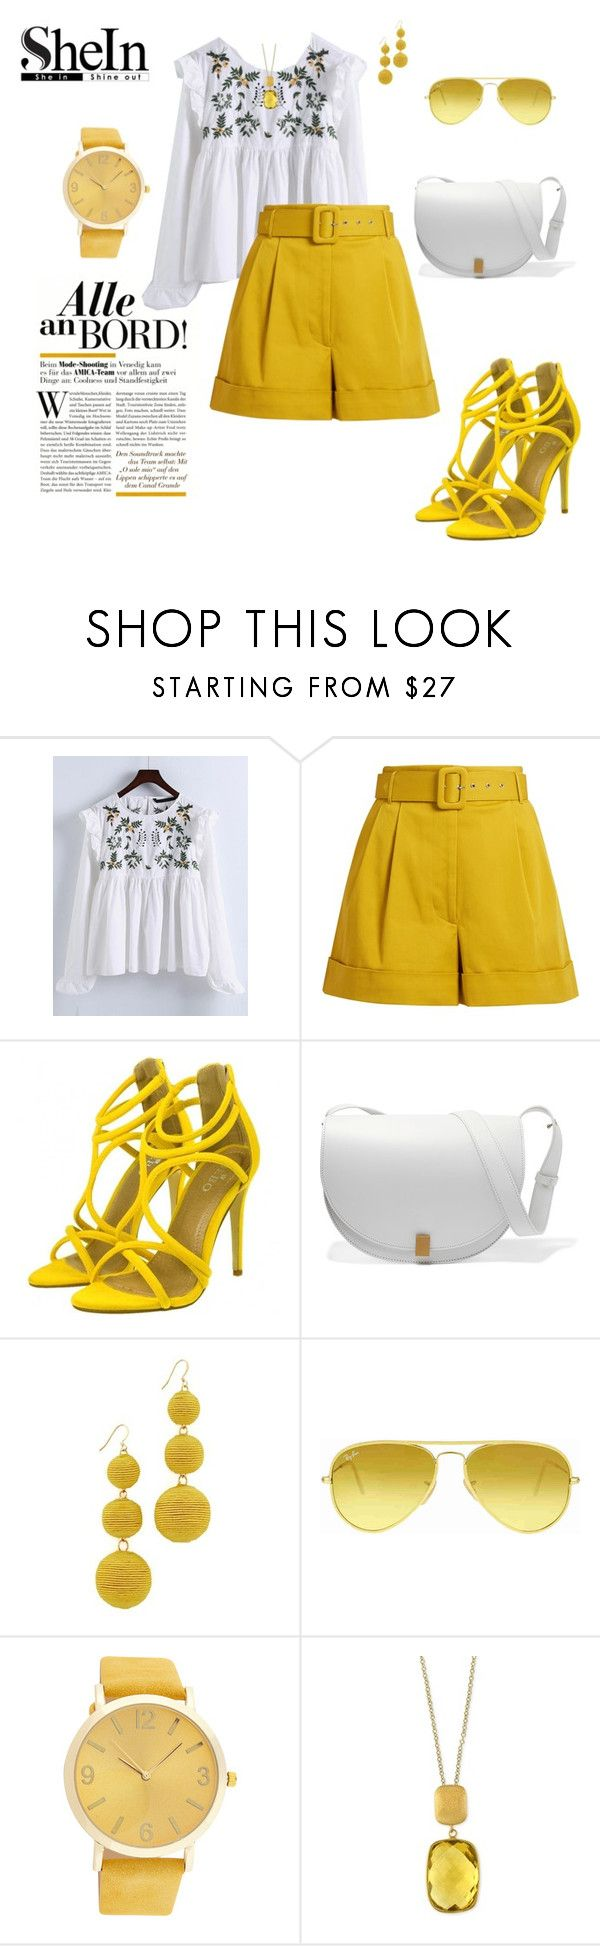 """Yellow glow"" by agnesmakoni ❤ liked on Polyvore featuring WithChic, Isa Arfen, Victoria Beckham, Kenneth Jay Lane, Ray-Ban and Effy Jewelry"